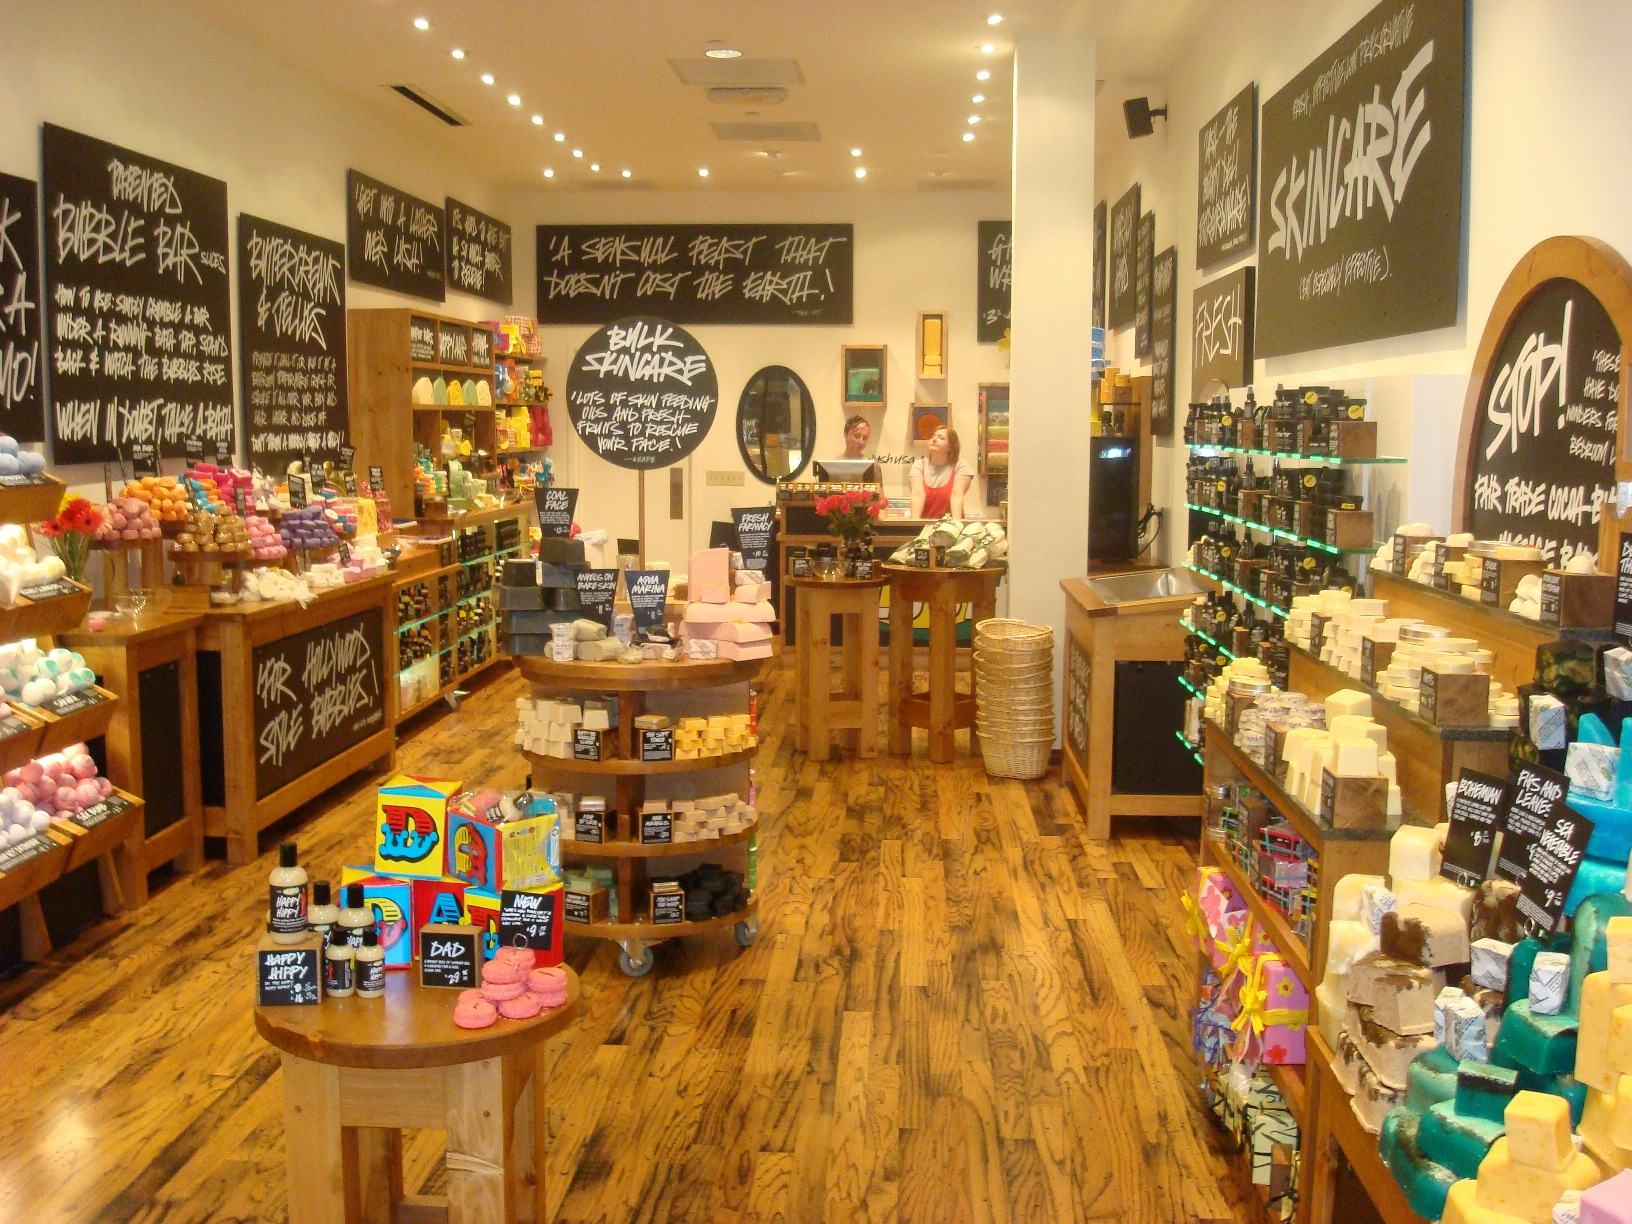 Lush's In-store Approach to Marketing